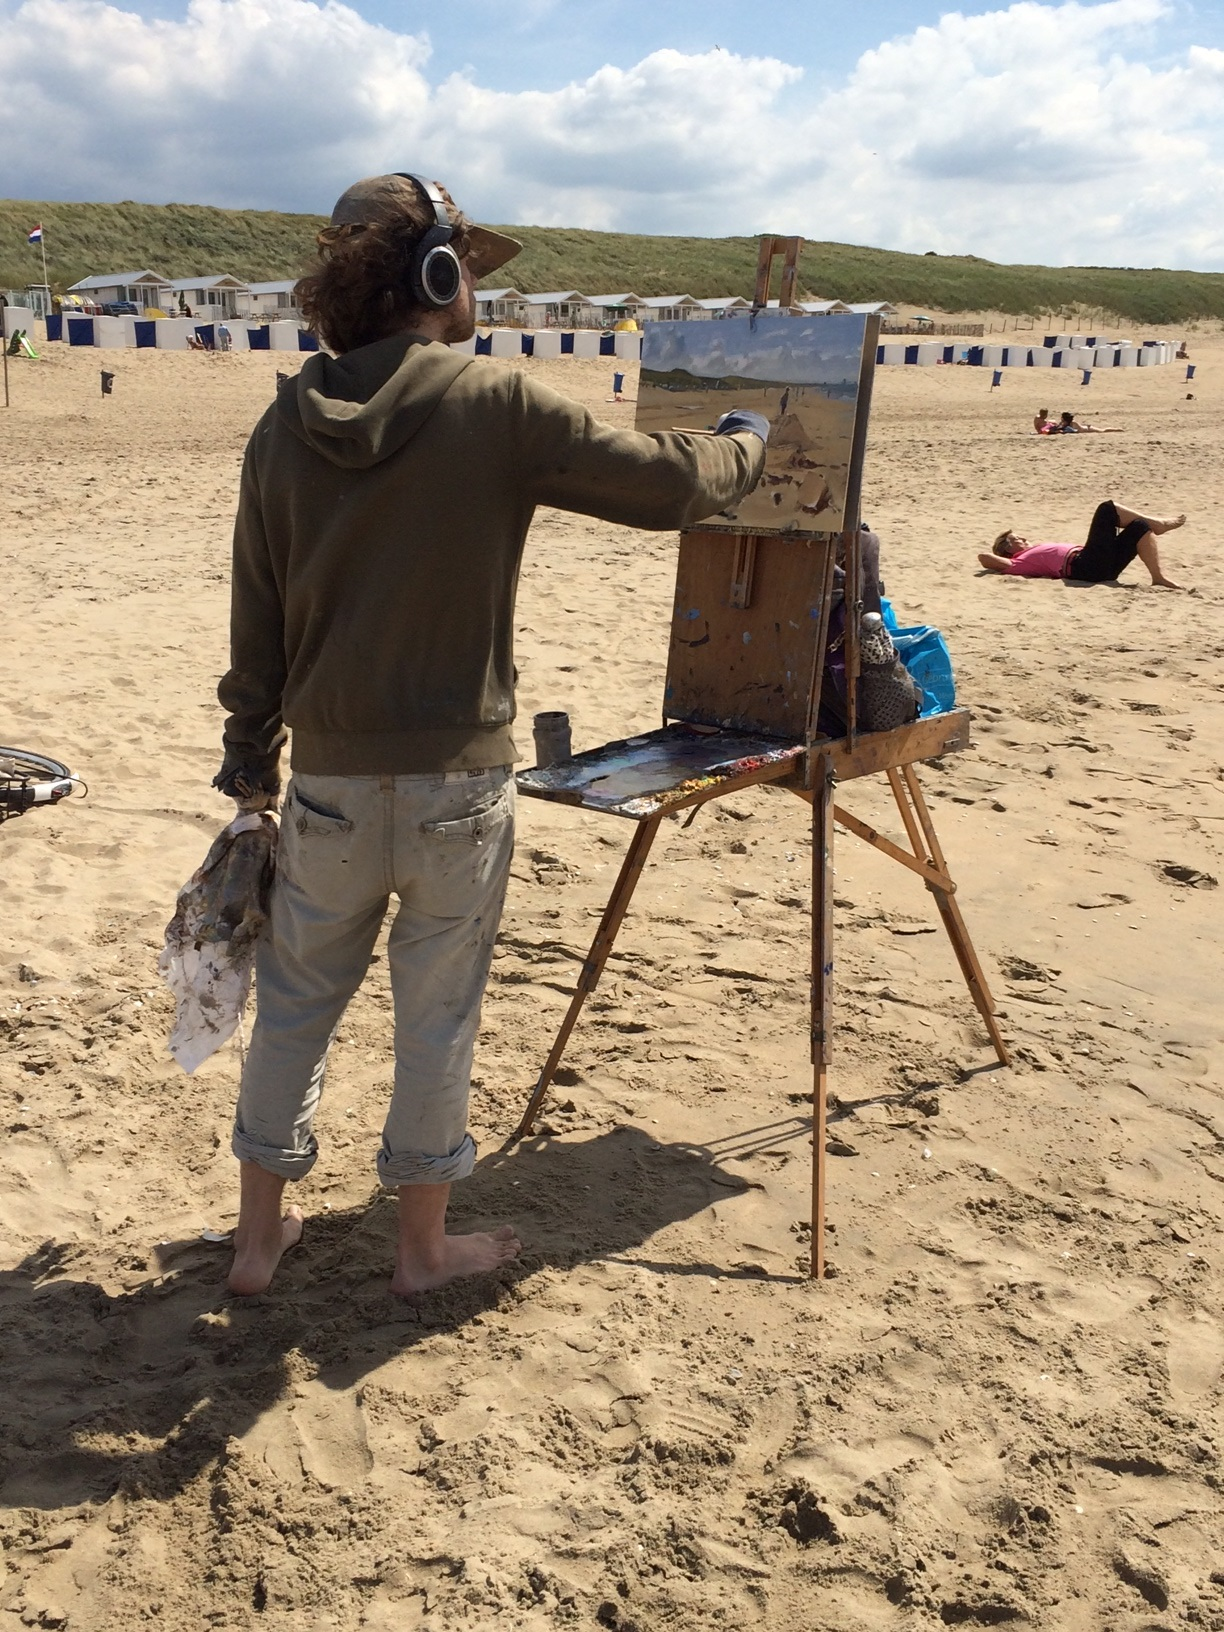 euroArt: Titus Meeuws on the Katwijk Beach